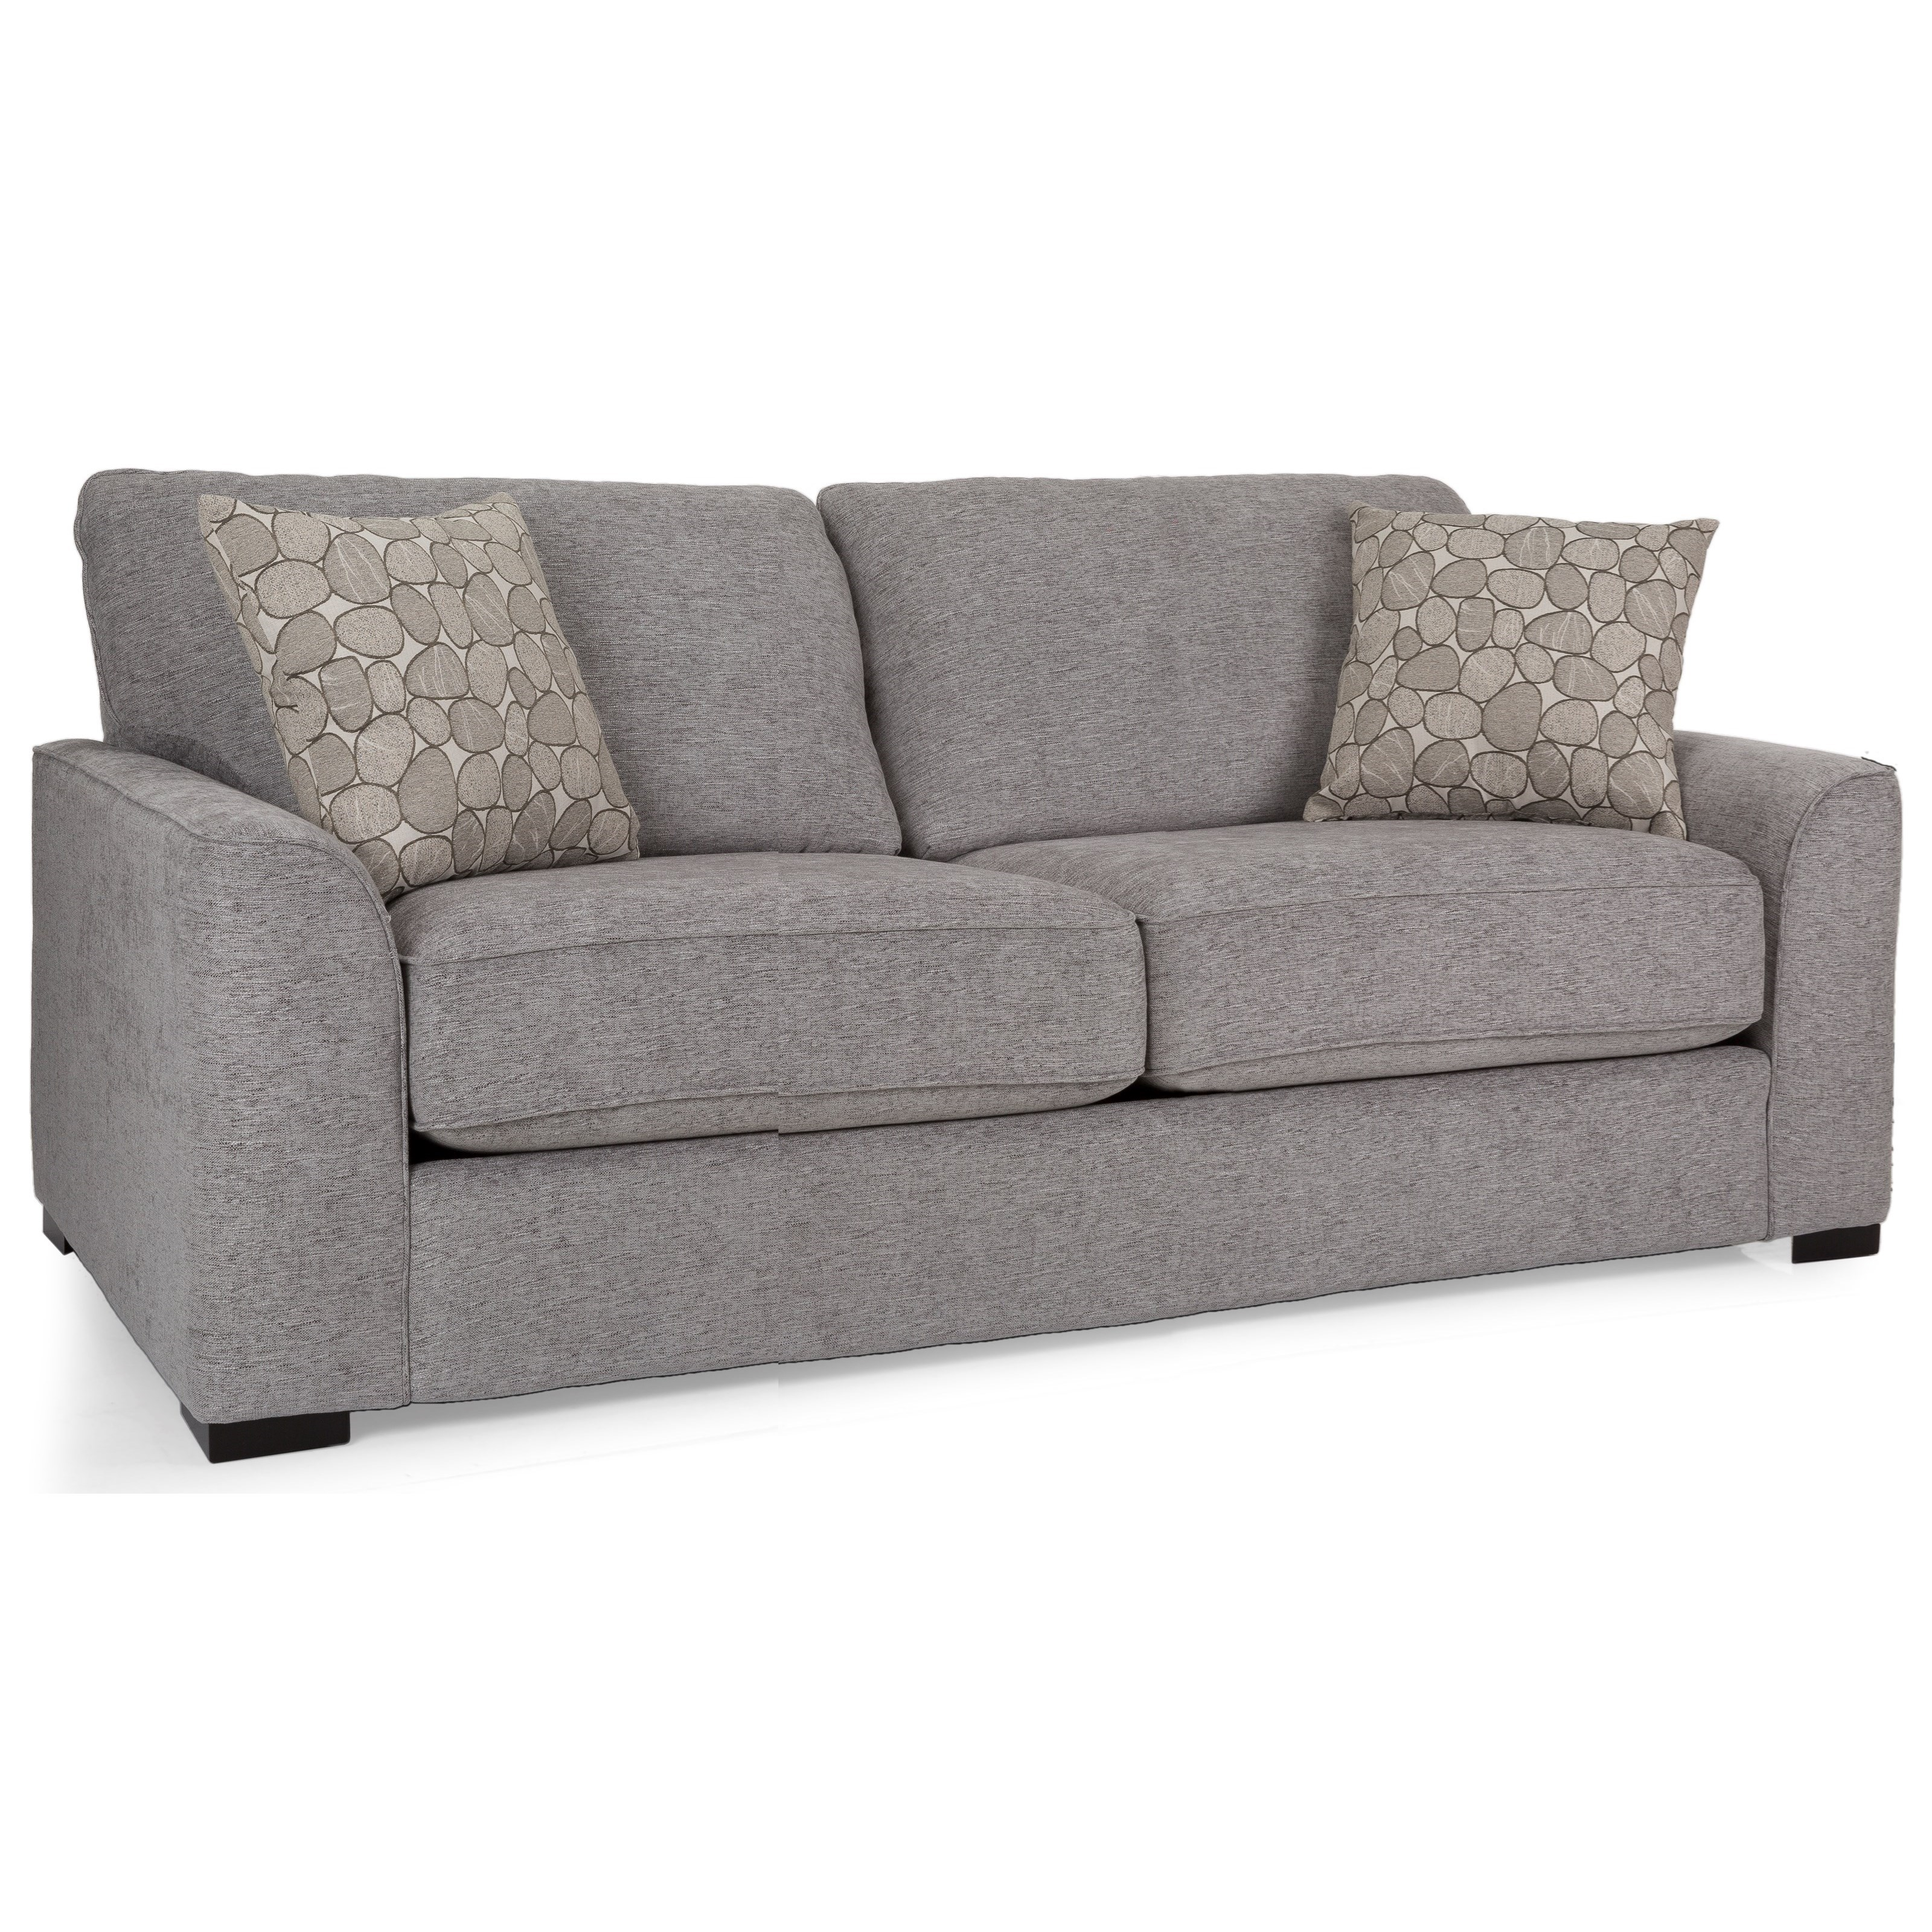 2786 Loveseat by Decor-Rest at Johnny Janosik